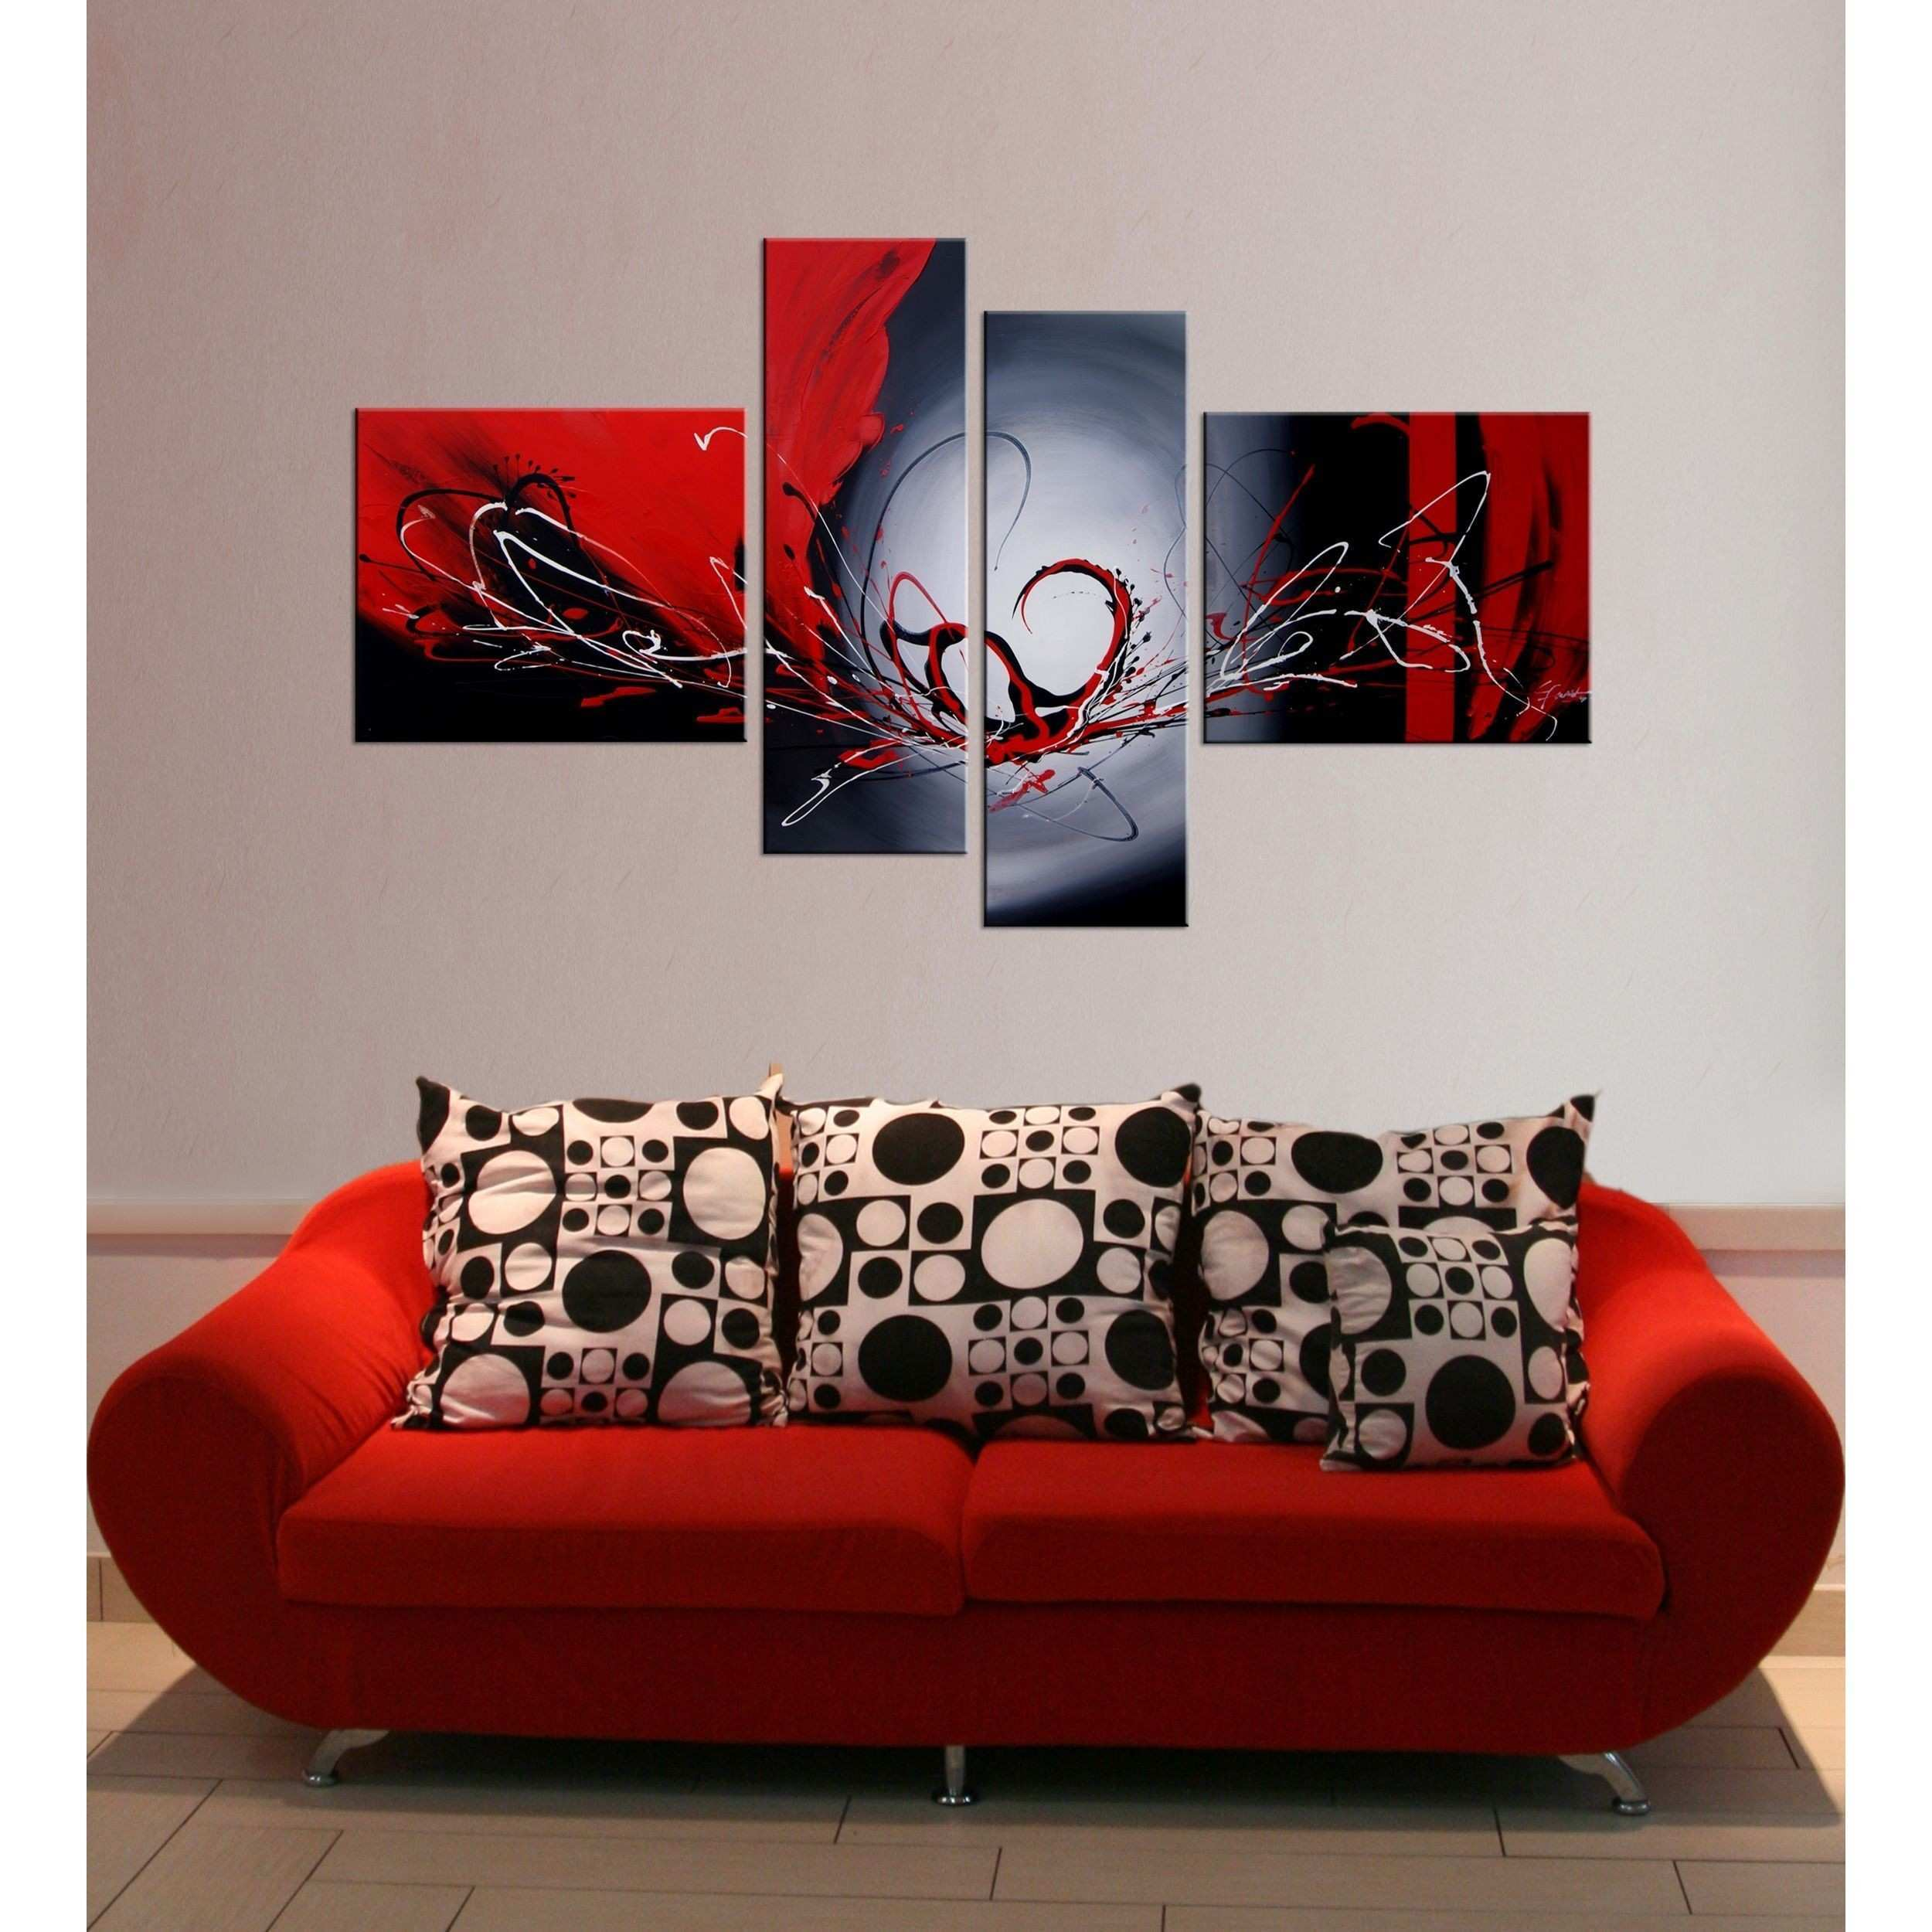 Add mystery to your interior design with this hand painted canvas